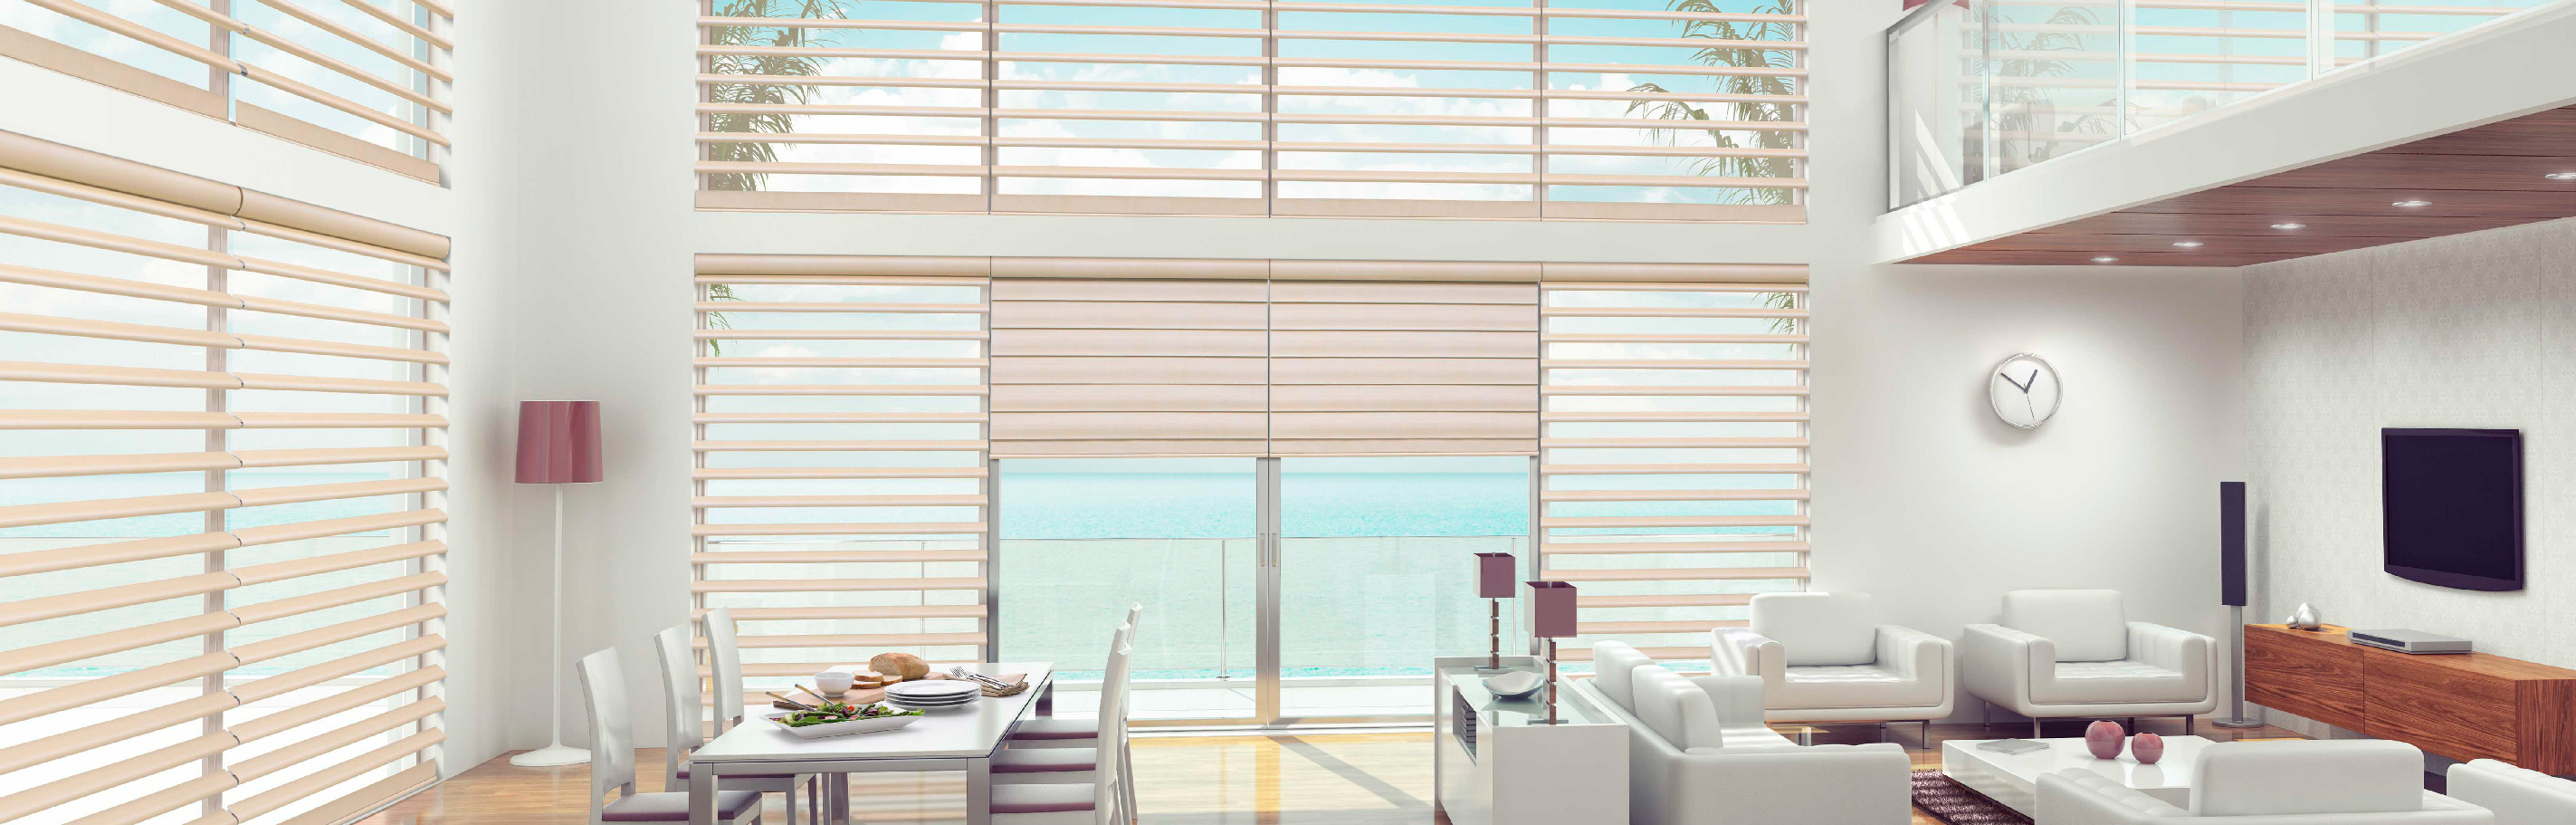 Luxaflex Showcase - Products - Softshades and Fabrics - Pirouette Shadings Bottom